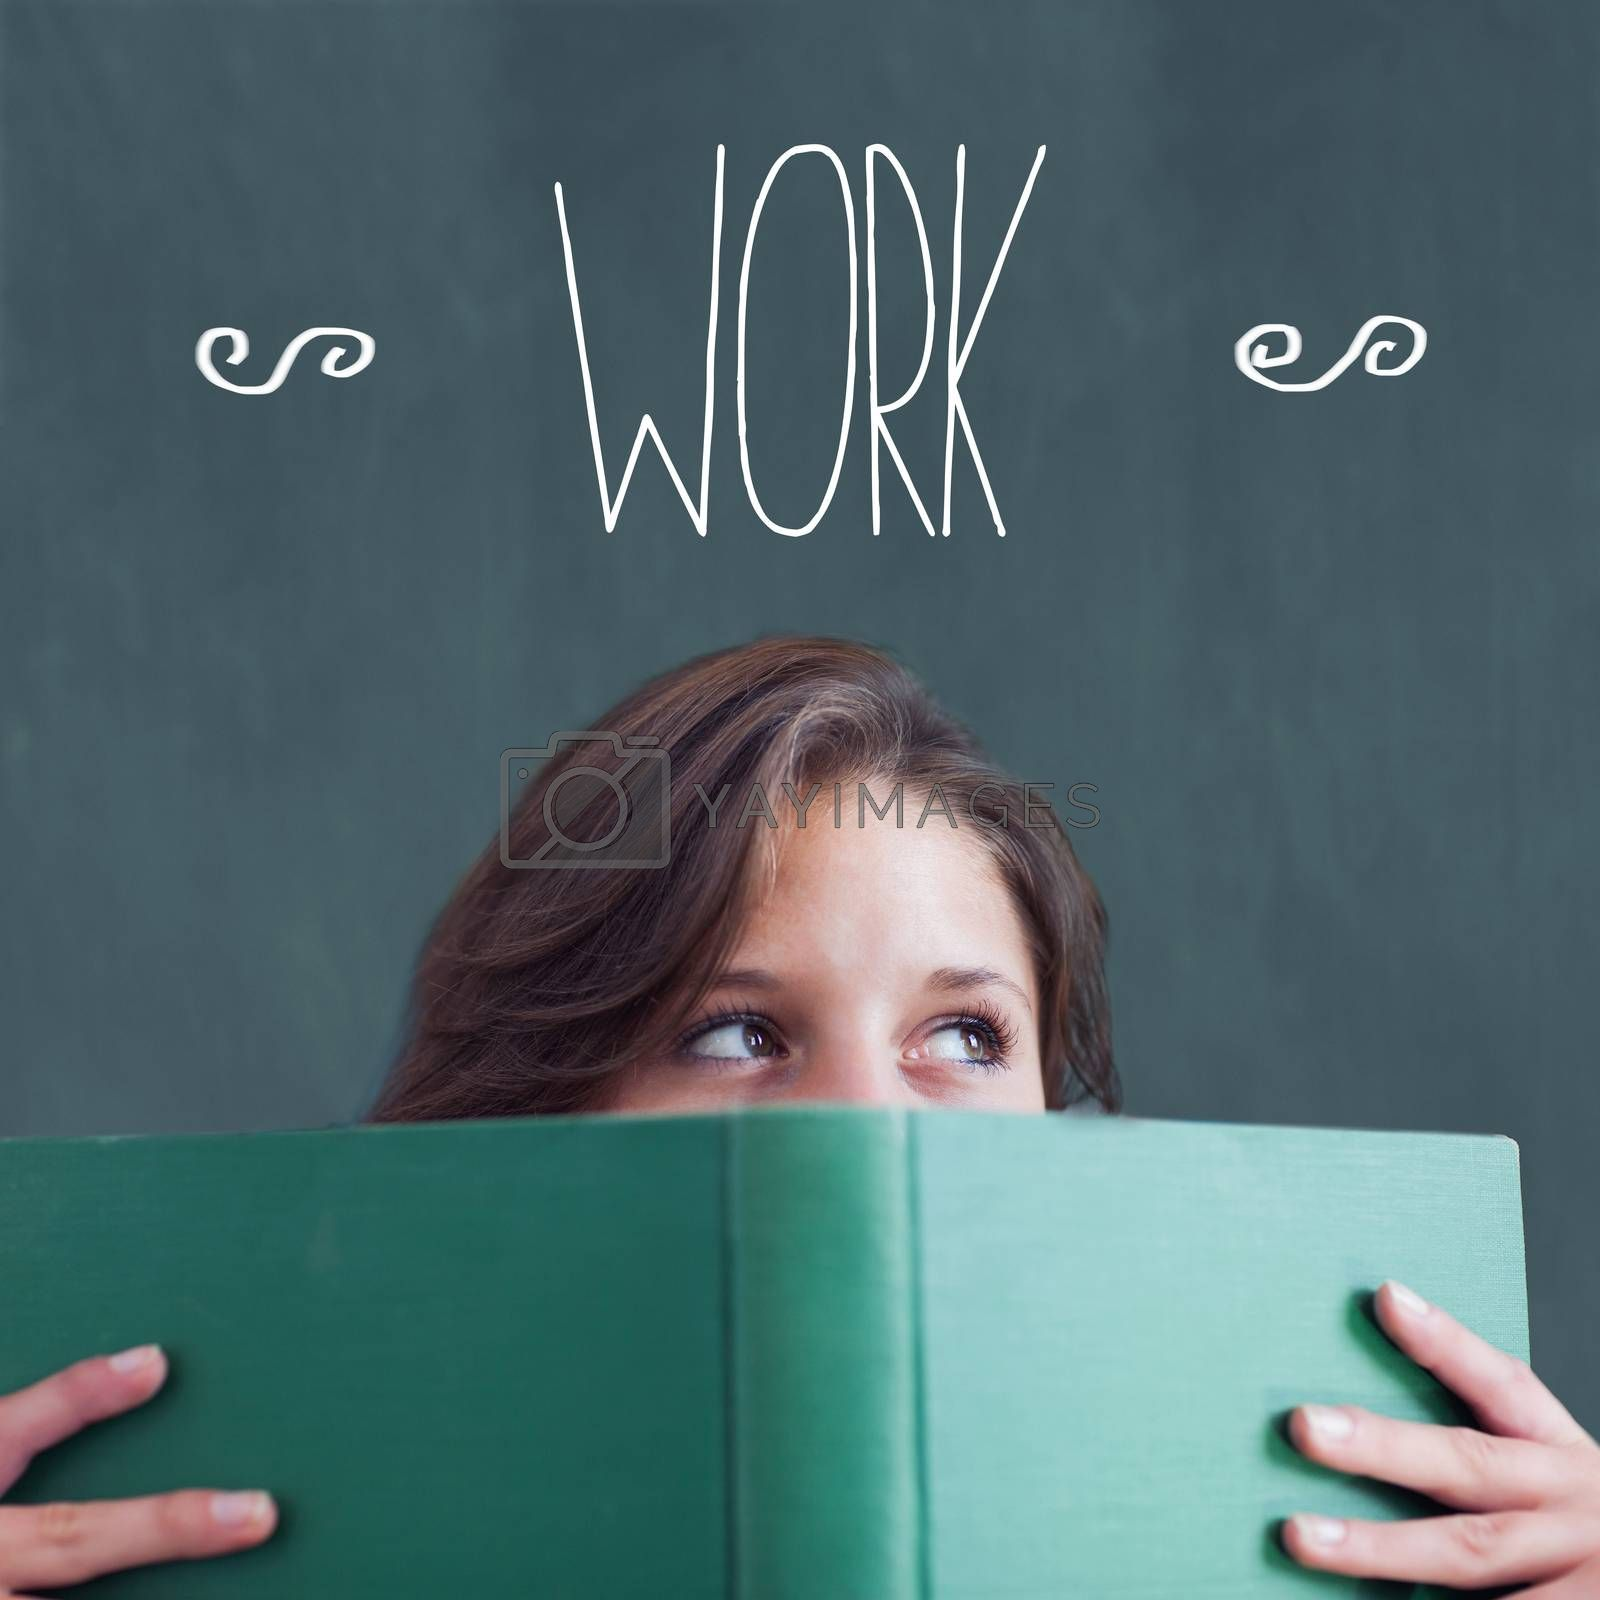 The word work against student holding book